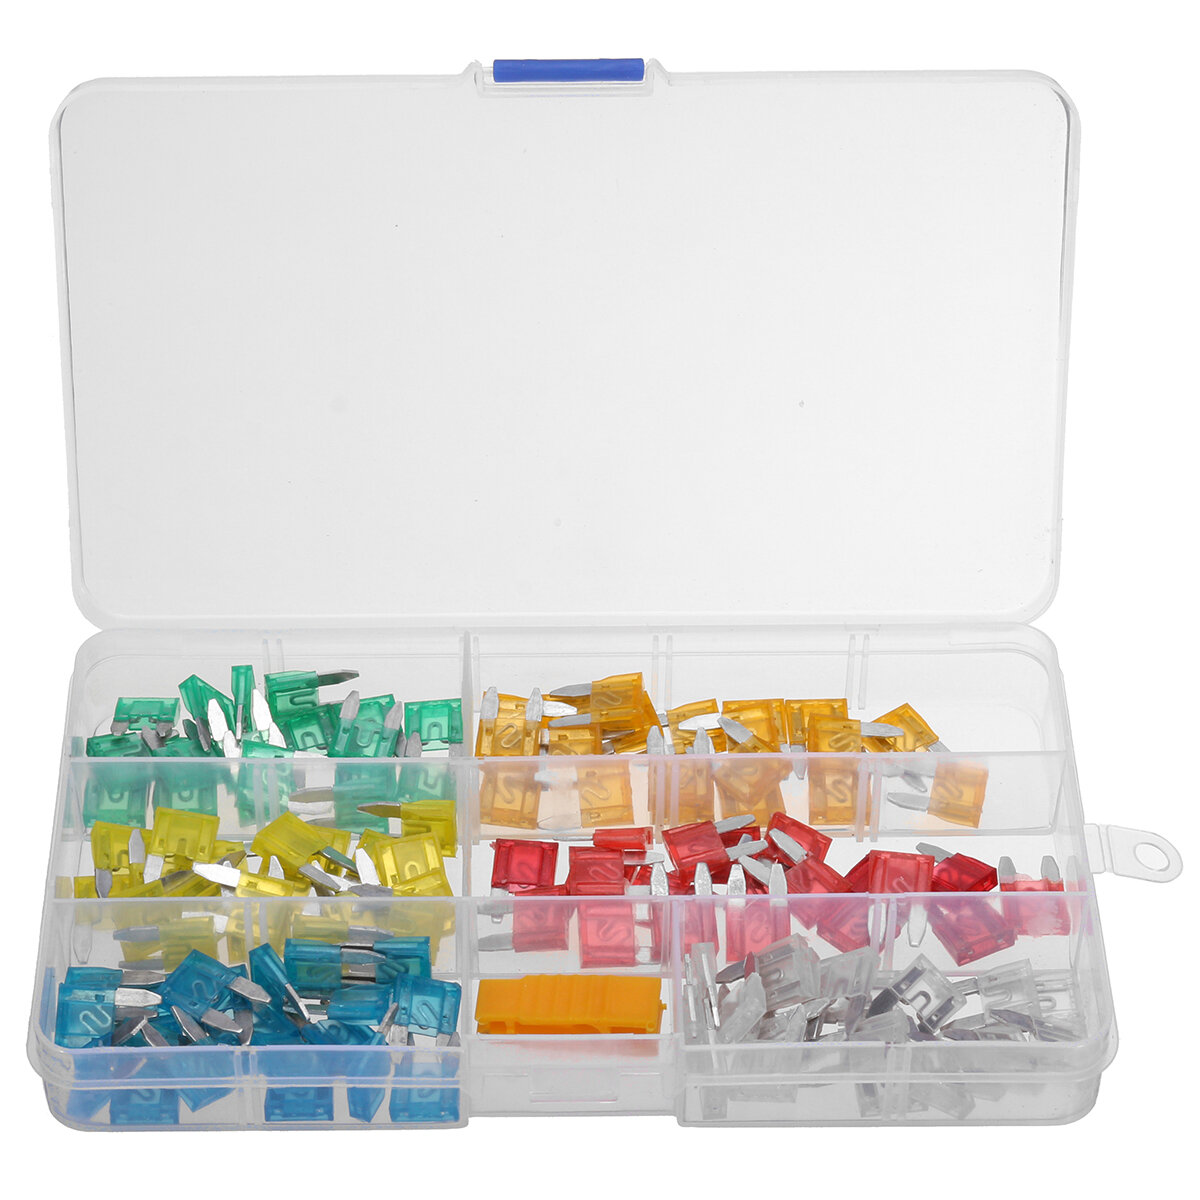 hight resolution of 120pcs mini blade fuse box assortment set automotive truck fuses holder kit cod